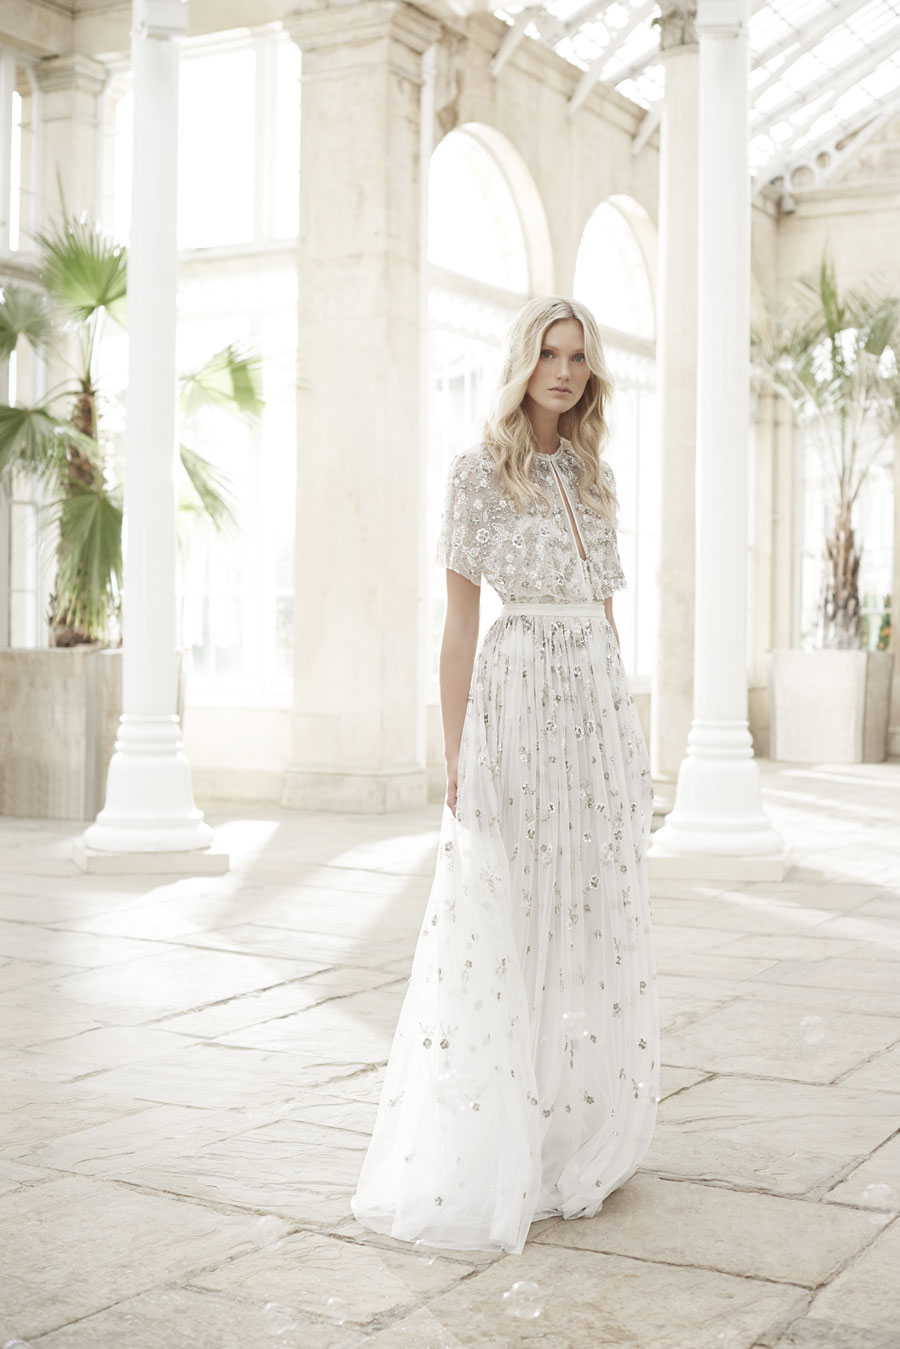 Wonderfully romantic wedding dresses the needle thread spring the 11 piece range embraces a contemporary fluidity through soft structures embellished clusters of delicate beadwork uttering sophistication and elegance ombrellifo Image collections